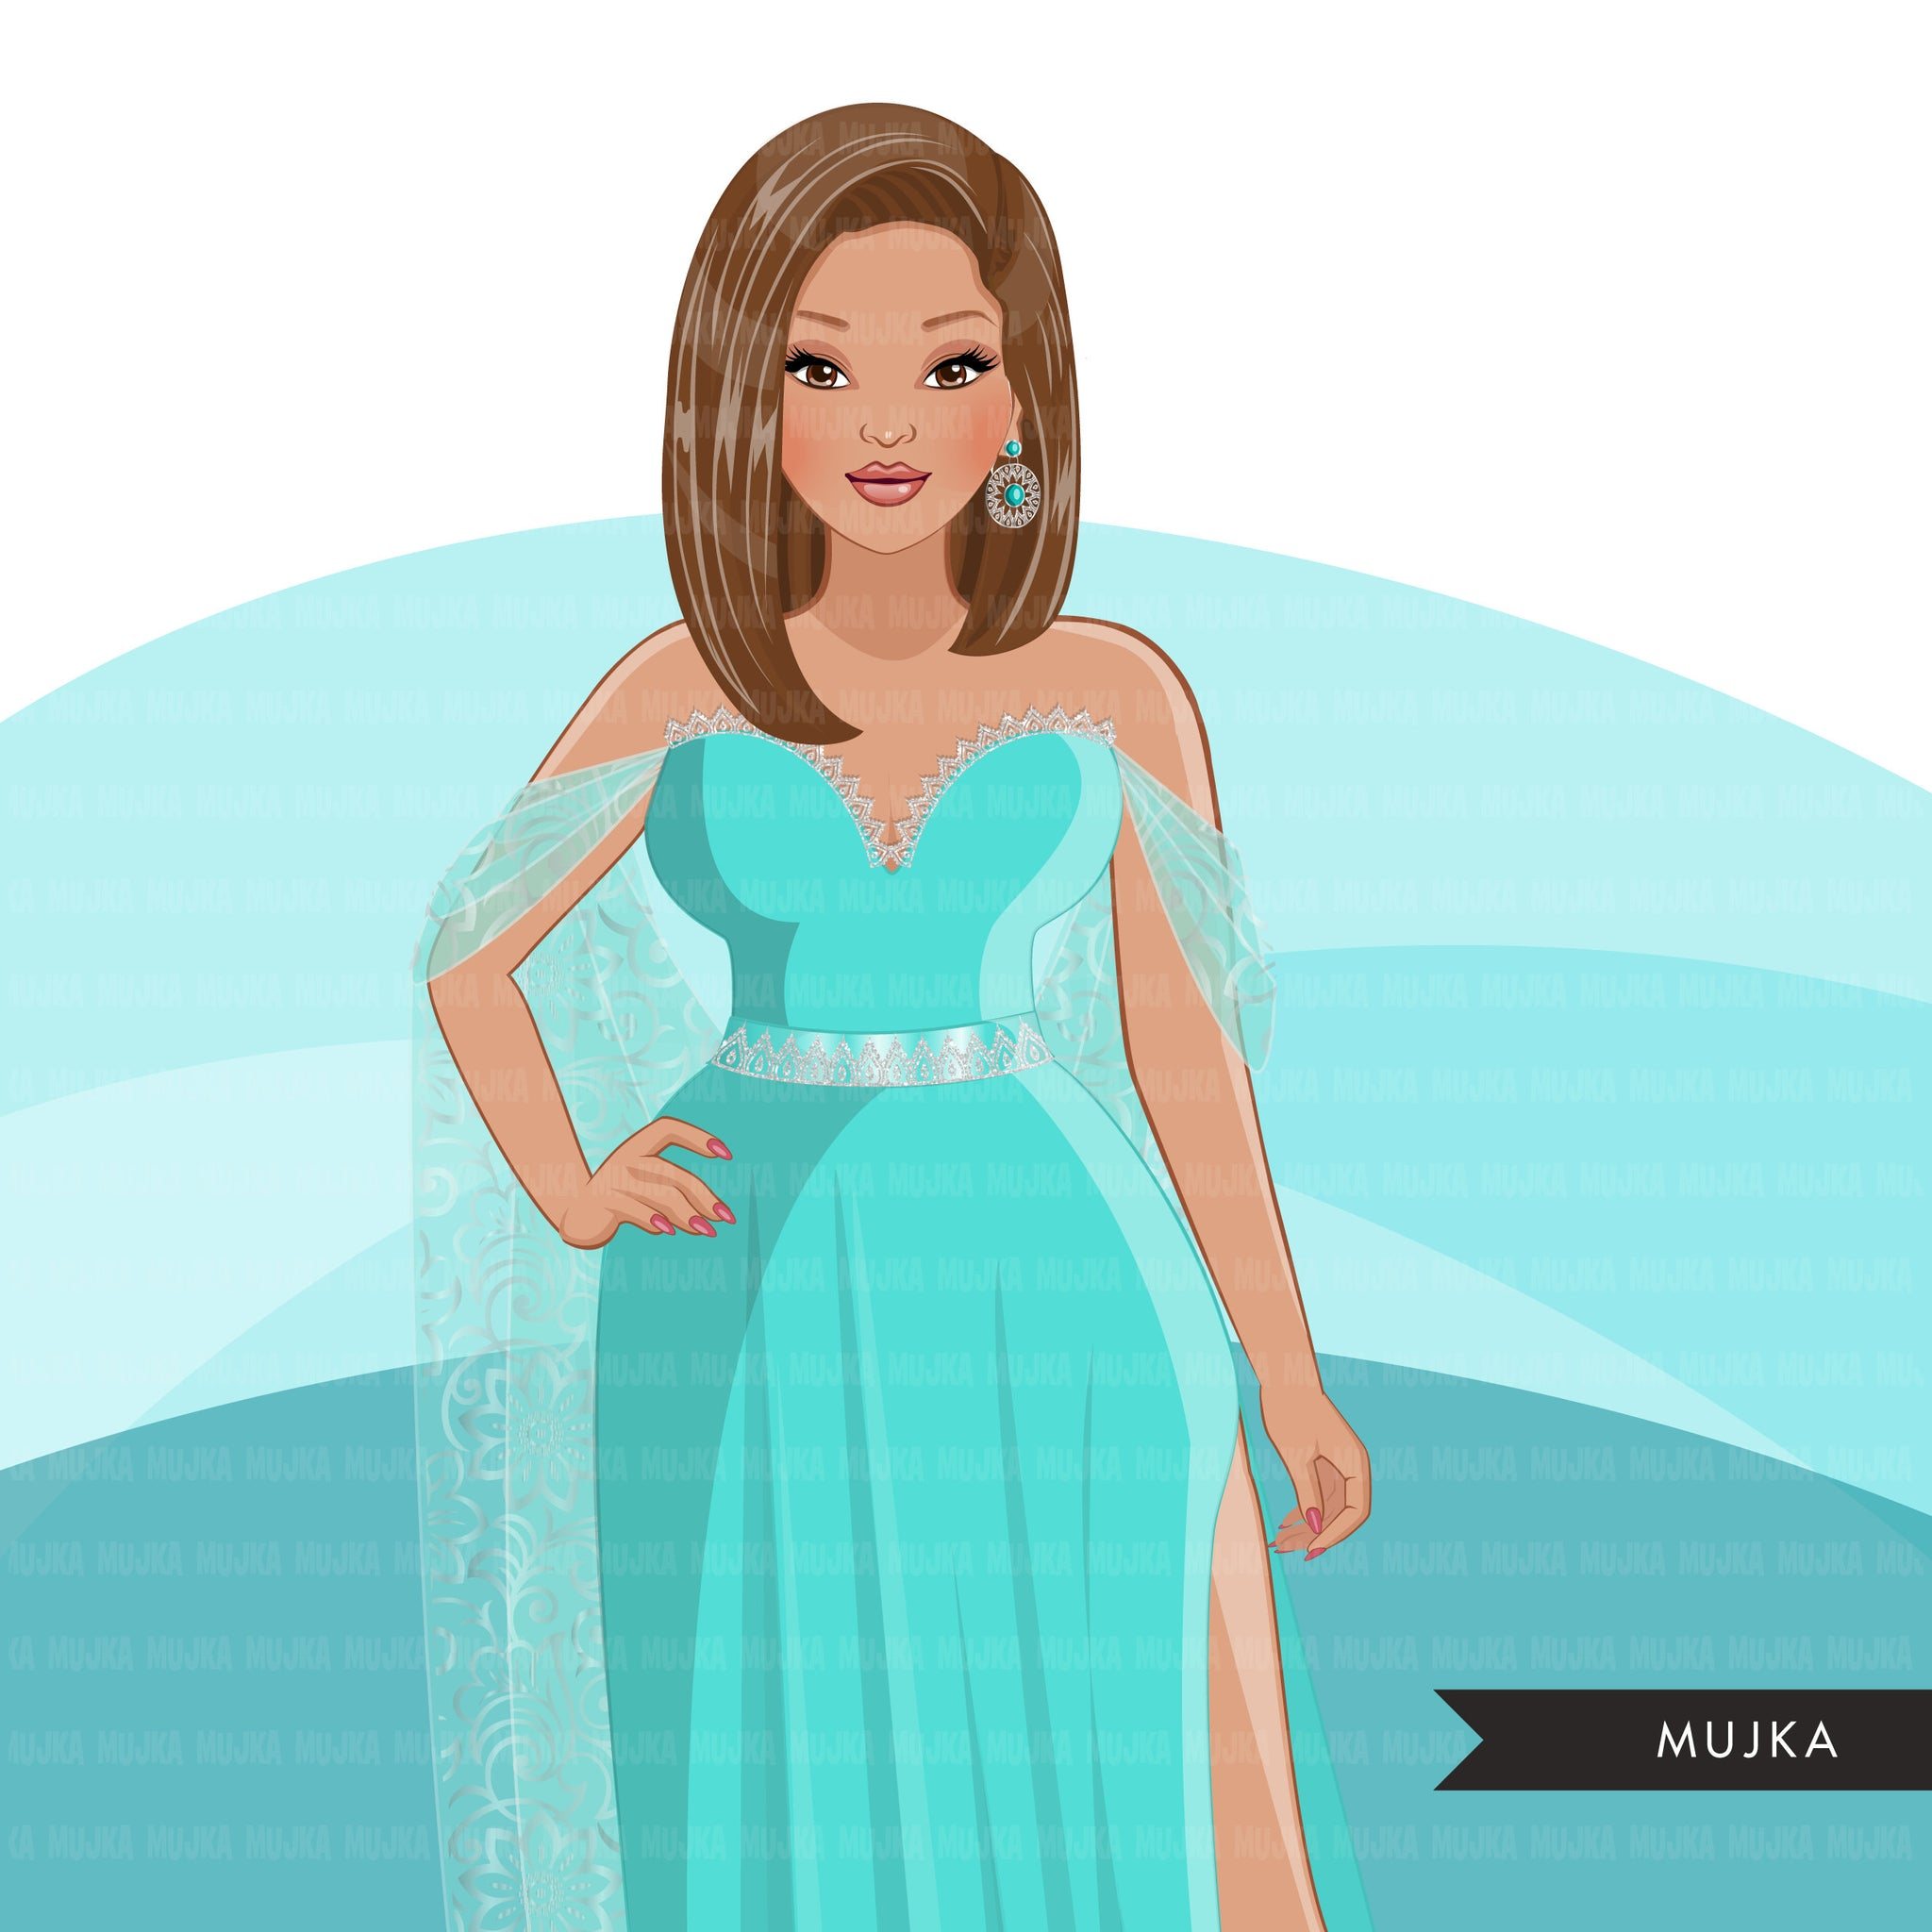 Fashion Clipart, aqua dress, woman designs, sisters, friends, sisterhood Sublimation designs digital download for Cricut